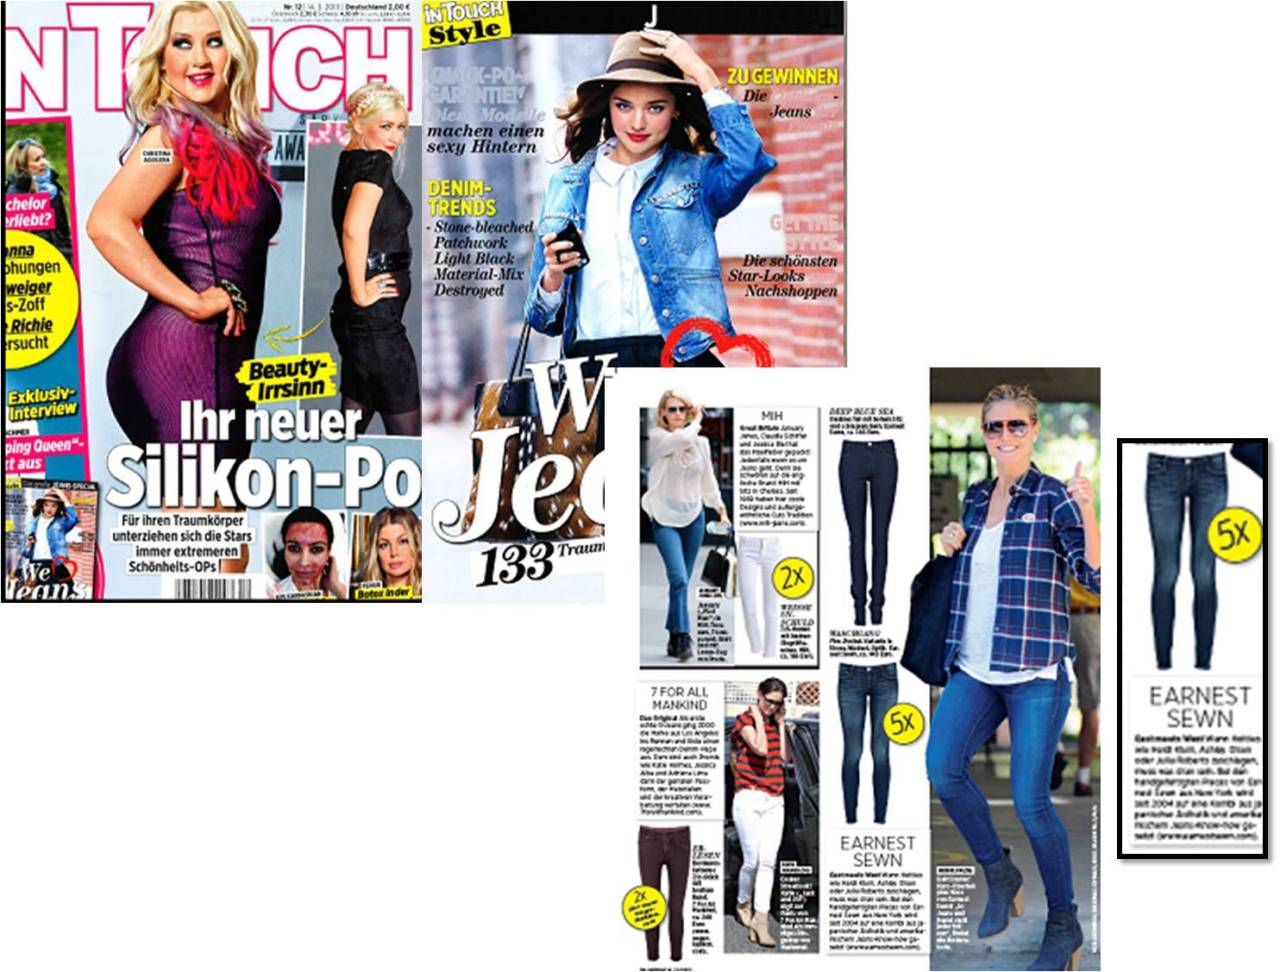 Heidi Klum shows off her Earnest Sewn jeans in InTouch Germany!